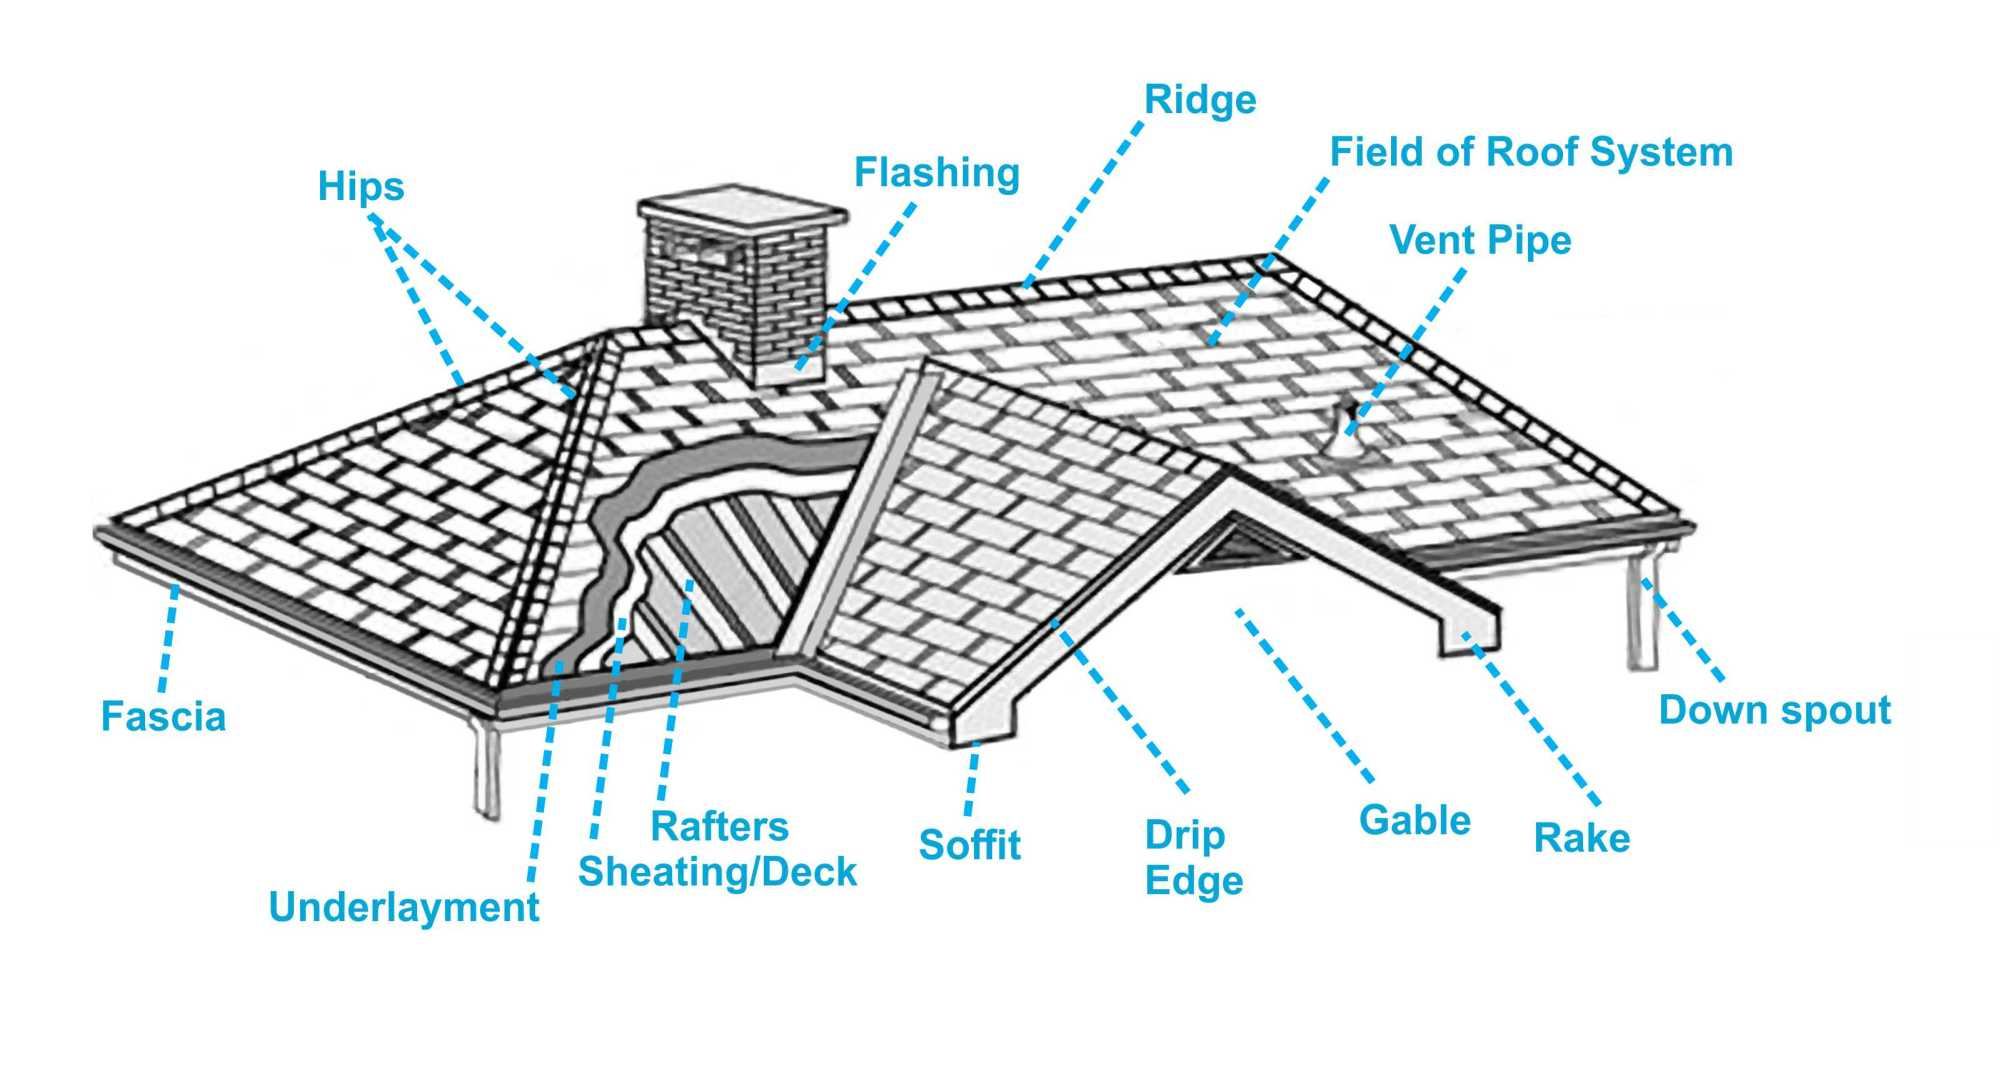 hight resolution of before you can accurately understand a roof assessment or a roofing estimate you should be familiar with roofing terminology below are some commonly used